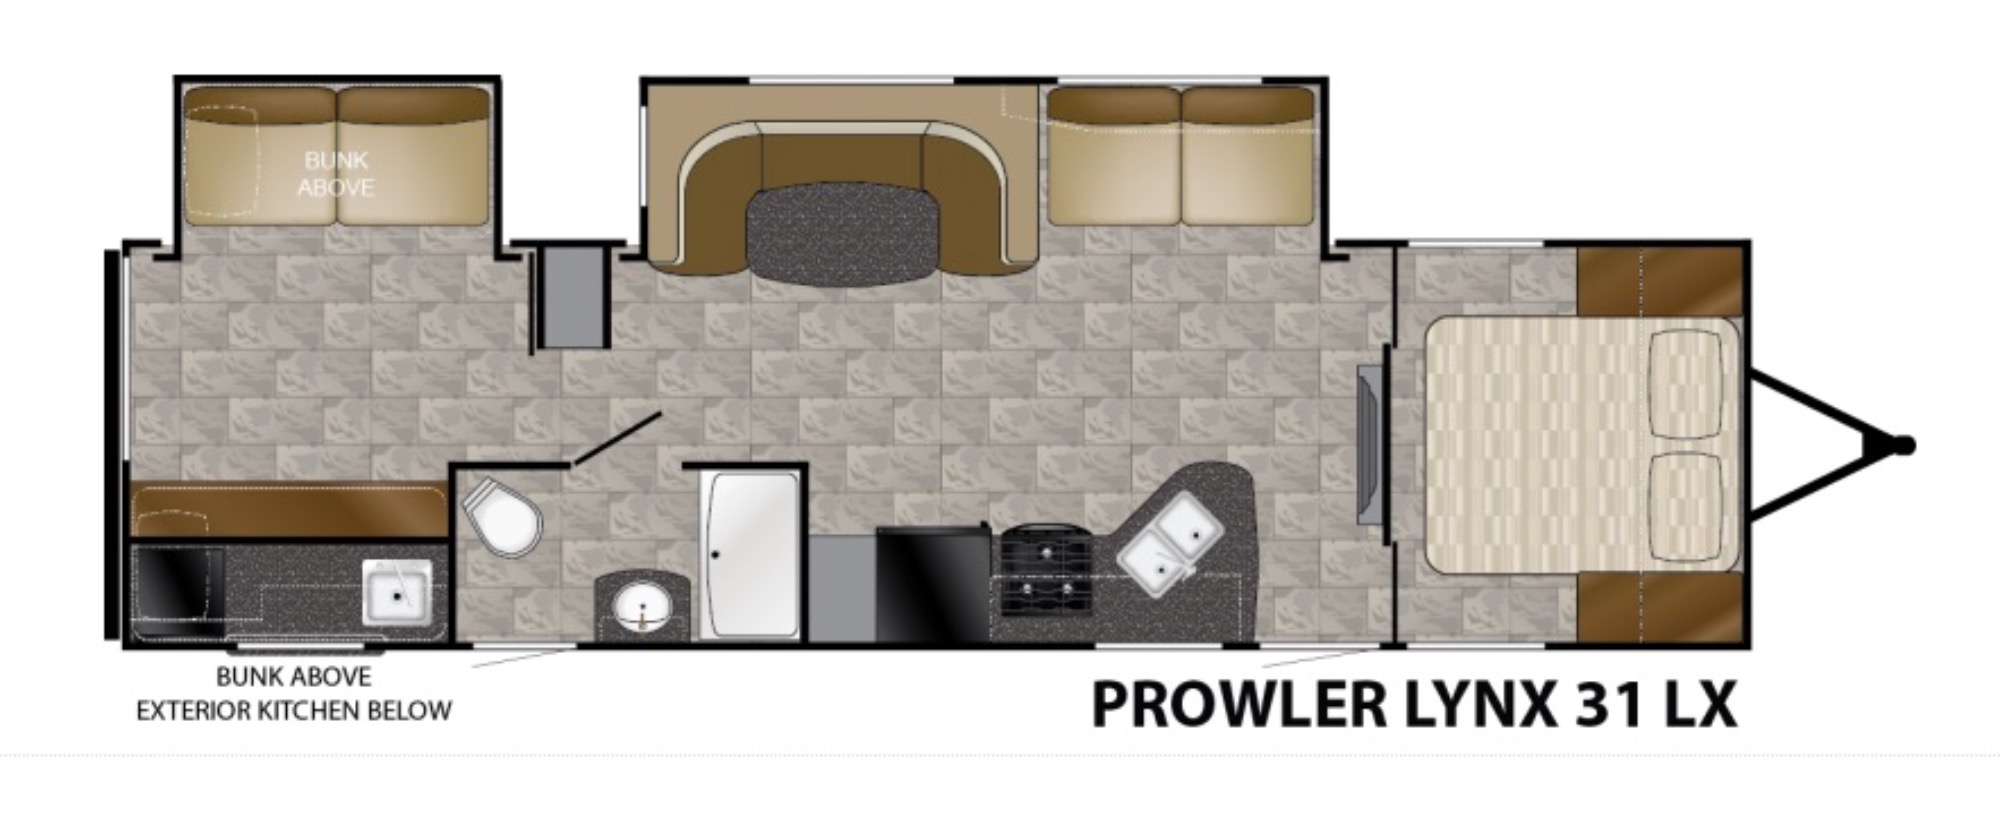 2016 prowler 5th wheel floor plans carpet vidalondon rv specialists view all prowler lynx floorplans exterior